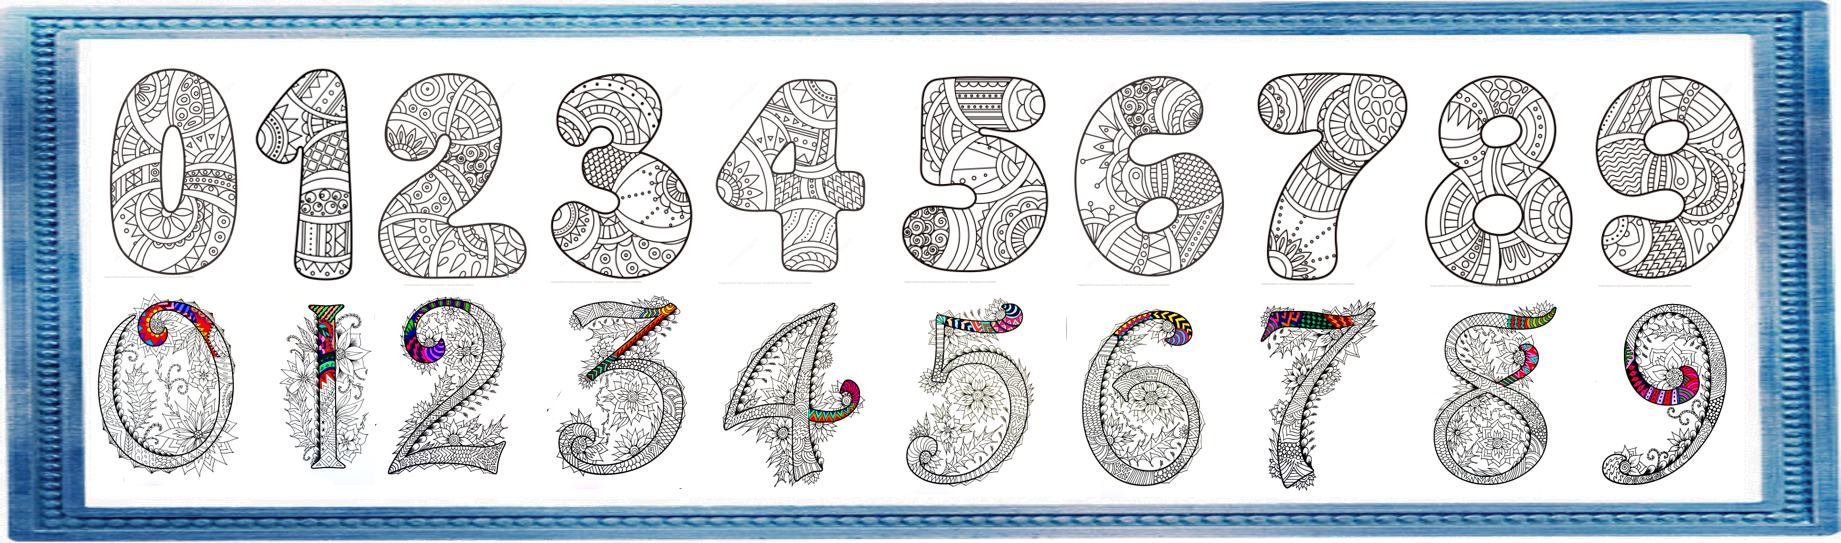 Zentangle, neuroescritura creativa para el fomento de la concentración.